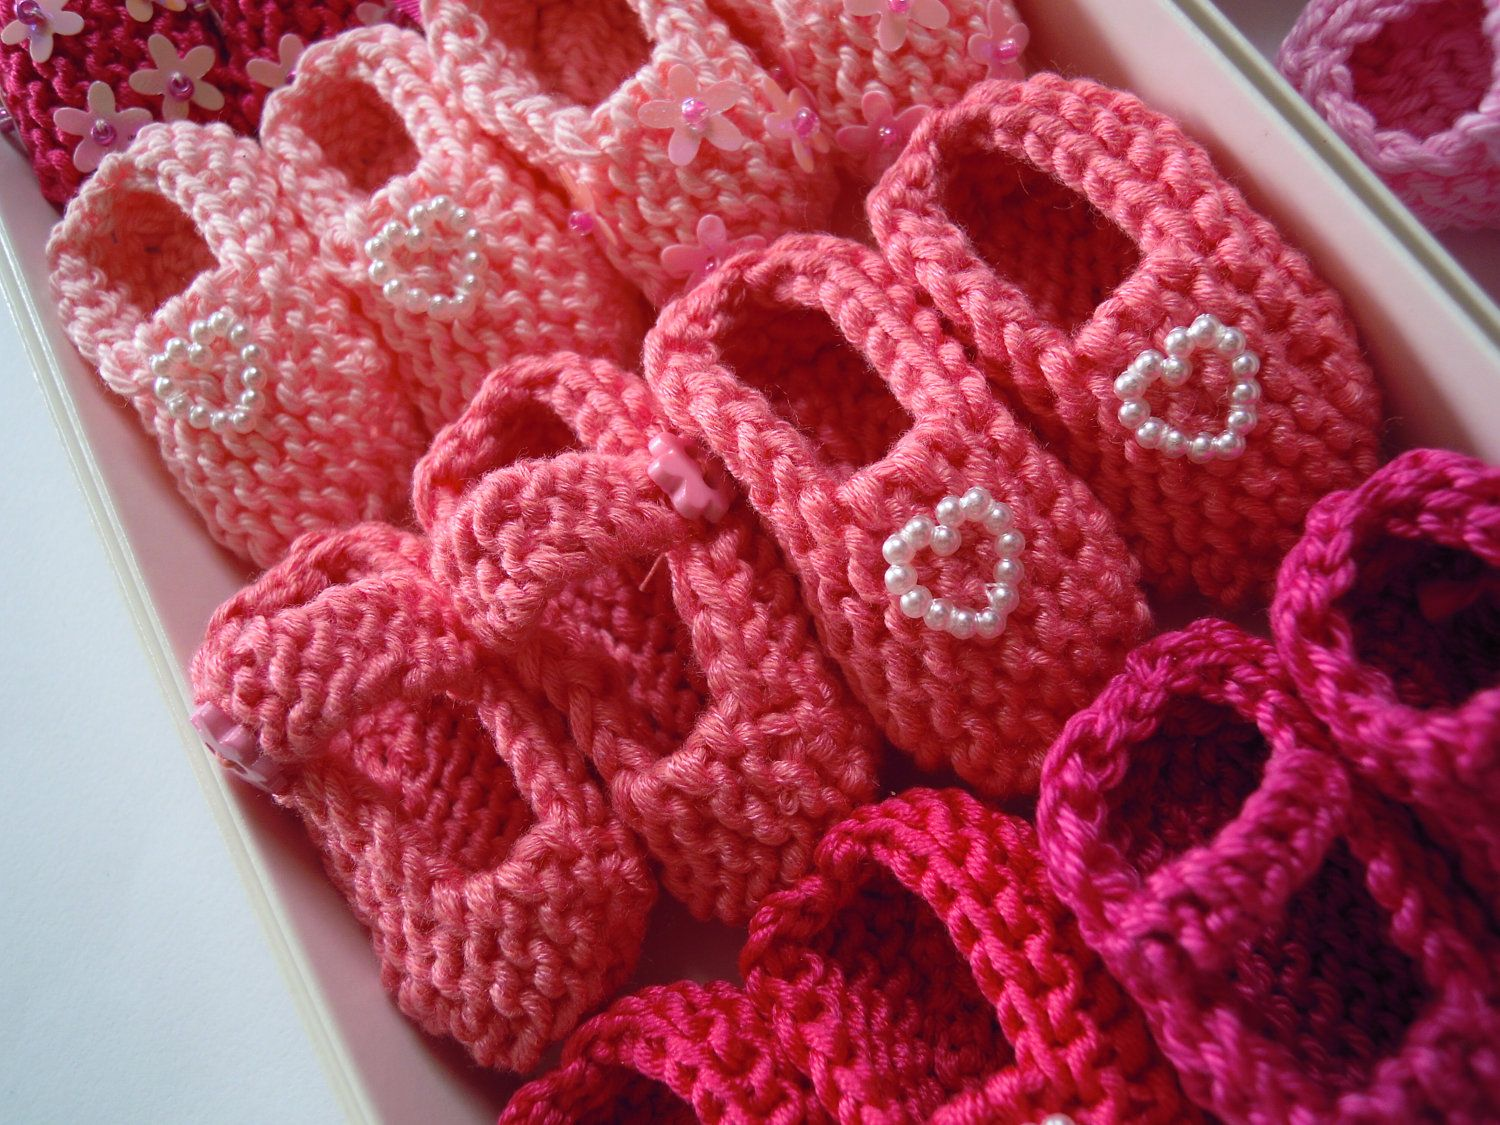 BESTSELLER Girl Baby Shower Decorations: 4 Pairs Hand Knit Mini Booties  Decorations   2 Inches   Shades Of Pink   DECORATION SIZE